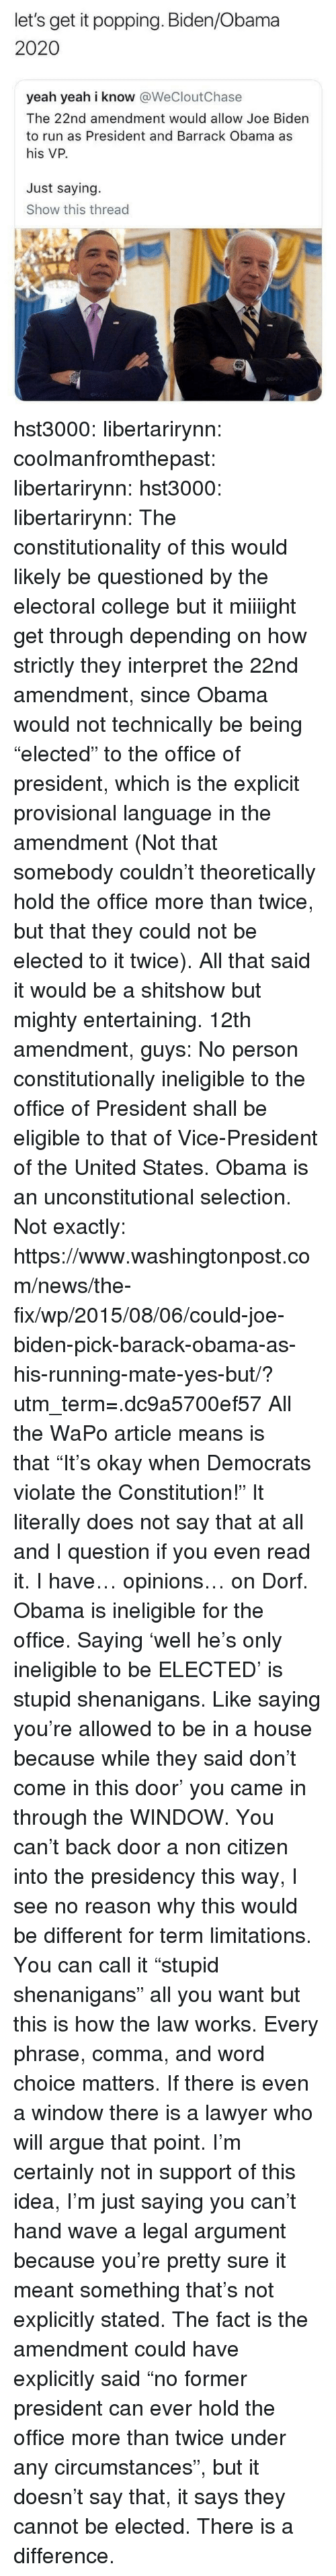 "Arguing, College, and Joe Biden: let's get it popping. Biden/Obama  2020  yeah yeah i know @WeCloutChase  The 22nd amendment would allow Joe Biden  to run as President and Barrack Obama as  his VP.  Just saying.  Show this thread  600 hst3000:  libertarirynn: coolmanfromthepast:  libertarirynn:  hst3000:  libertarirynn:  The constitutionality of this would likely be questioned by the electoral college but it miiiight get through depending on how strictly they interpret the 22nd amendment, since Obama would not technically be being ""elected"" to the office of president, which is the explicit provisional language in the amendment (Not that somebody couldn't theoretically hold the office more than twice, but that they could not be elected to it twice).  All that said it would be a shitshow but mighty entertaining.  12th amendment, guys:  No person constitutionally ineligible to the office of President shall  be eligible to that of Vice-President of the United States.  Obama is an unconstitutional selection.   Not exactly: https://www.washingtonpost.com/news/the-fix/wp/2015/08/06/could-joe-biden-pick-barack-obama-as-his-running-mate-yes-but/?utm_term=.dc9a5700ef57  All the WaPo article means is that ""It's okay when Democrats violate the Constitution!""  It literally does not say that at all and I question if you even read it.  I have… opinions… on Dorf. Obama is ineligible for the office. Saying 'well he's only ineligible to be ELECTED' is stupid shenanigans. Like saying you're allowed to be in a house because while they said don't come in this door' you came in through the WINDOW. You can't back door a non citizen into the presidency this way, I see no reason why this would be different for term limitations.  You can call it ""stupid shenanigans"" all you want but this is how the law works. Every phrase, comma, and word choice matters. If there is even a window there is a lawyer who will argue that point. I'm certainly not in support of this idea, I'm just saying you can't hand wave a legal argument because you're pretty sure it meant something that's not explicitly stated. The fact is the amendment could have explicitly said ""no former president can ever hold the office more than twice under any circumstances"", but it doesn't say that, it says they cannot be elected. There is a difference."